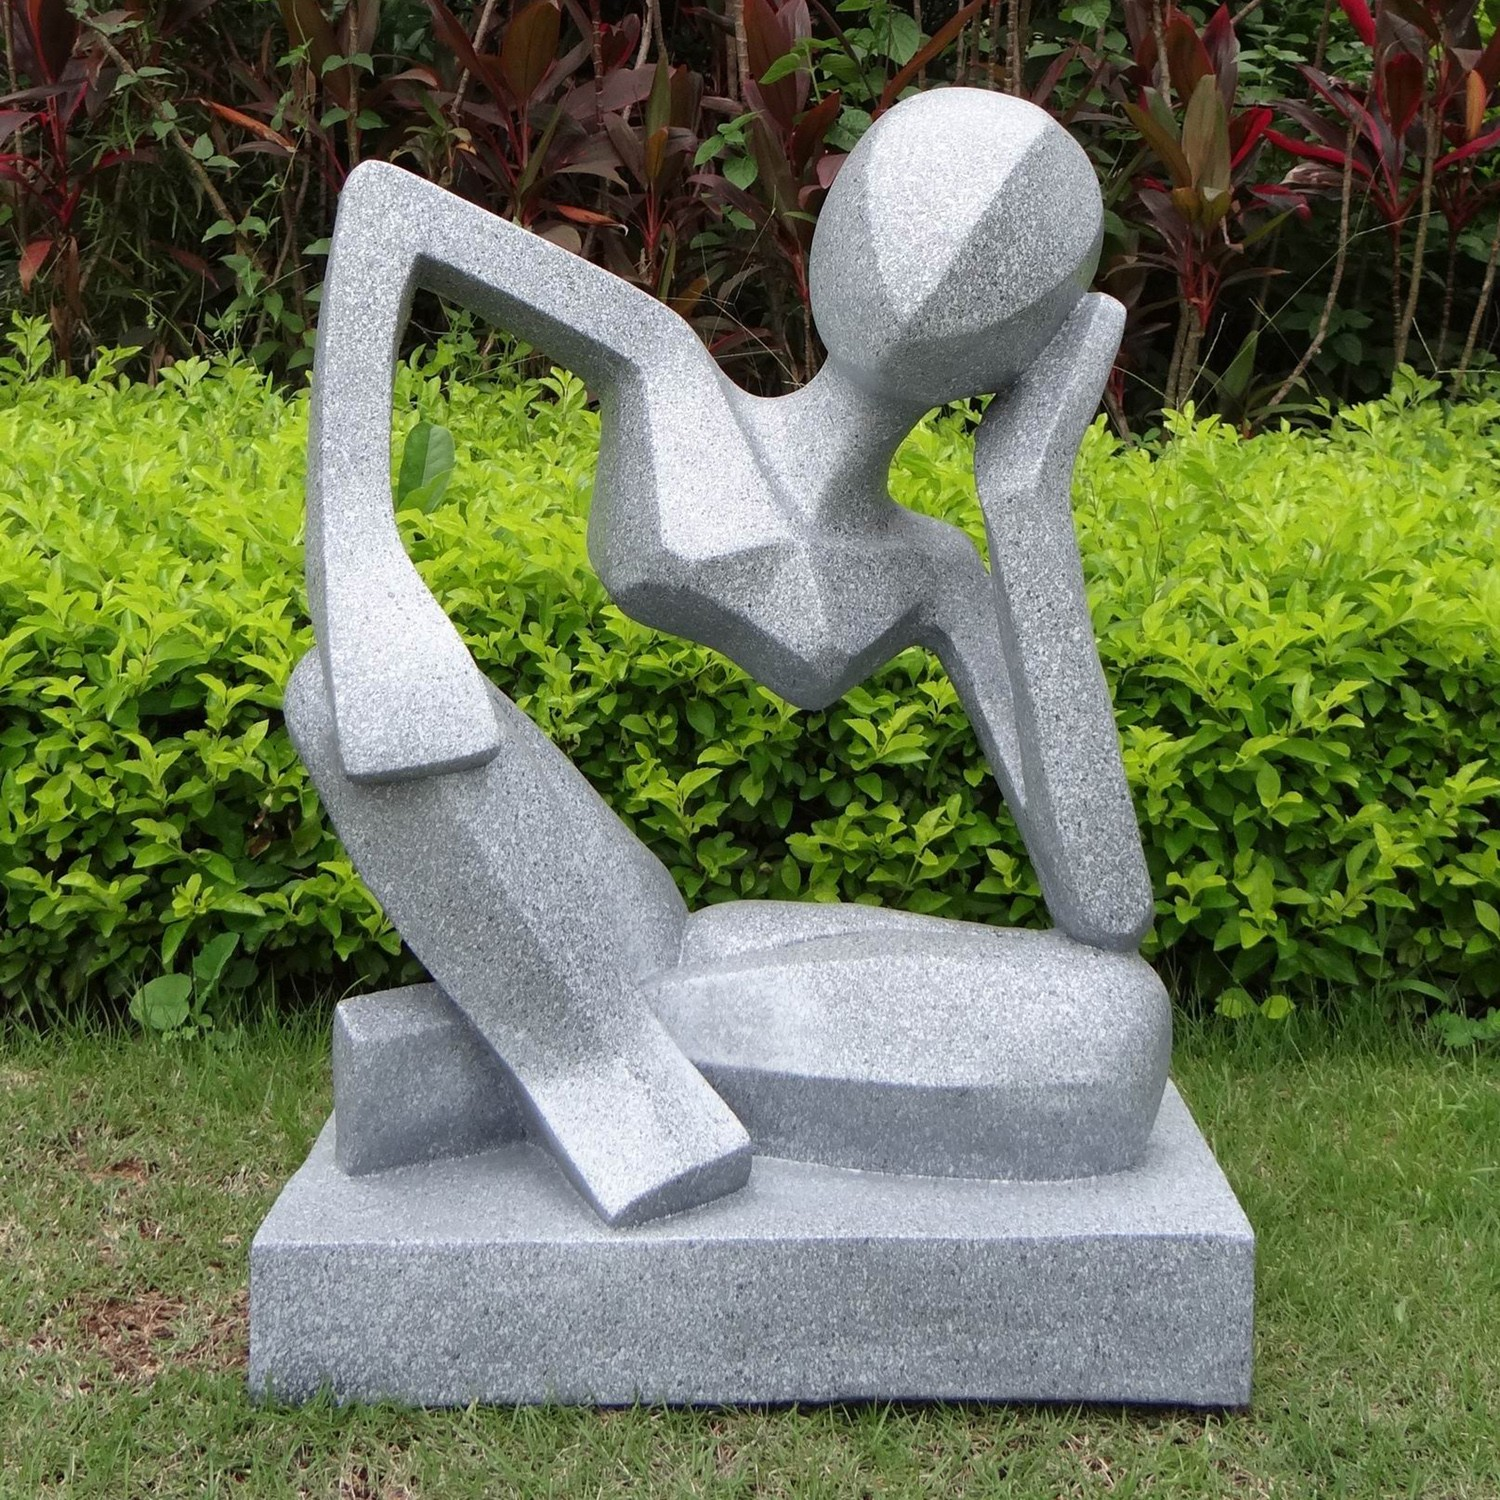 How to use garden sculptures in a creative manner?